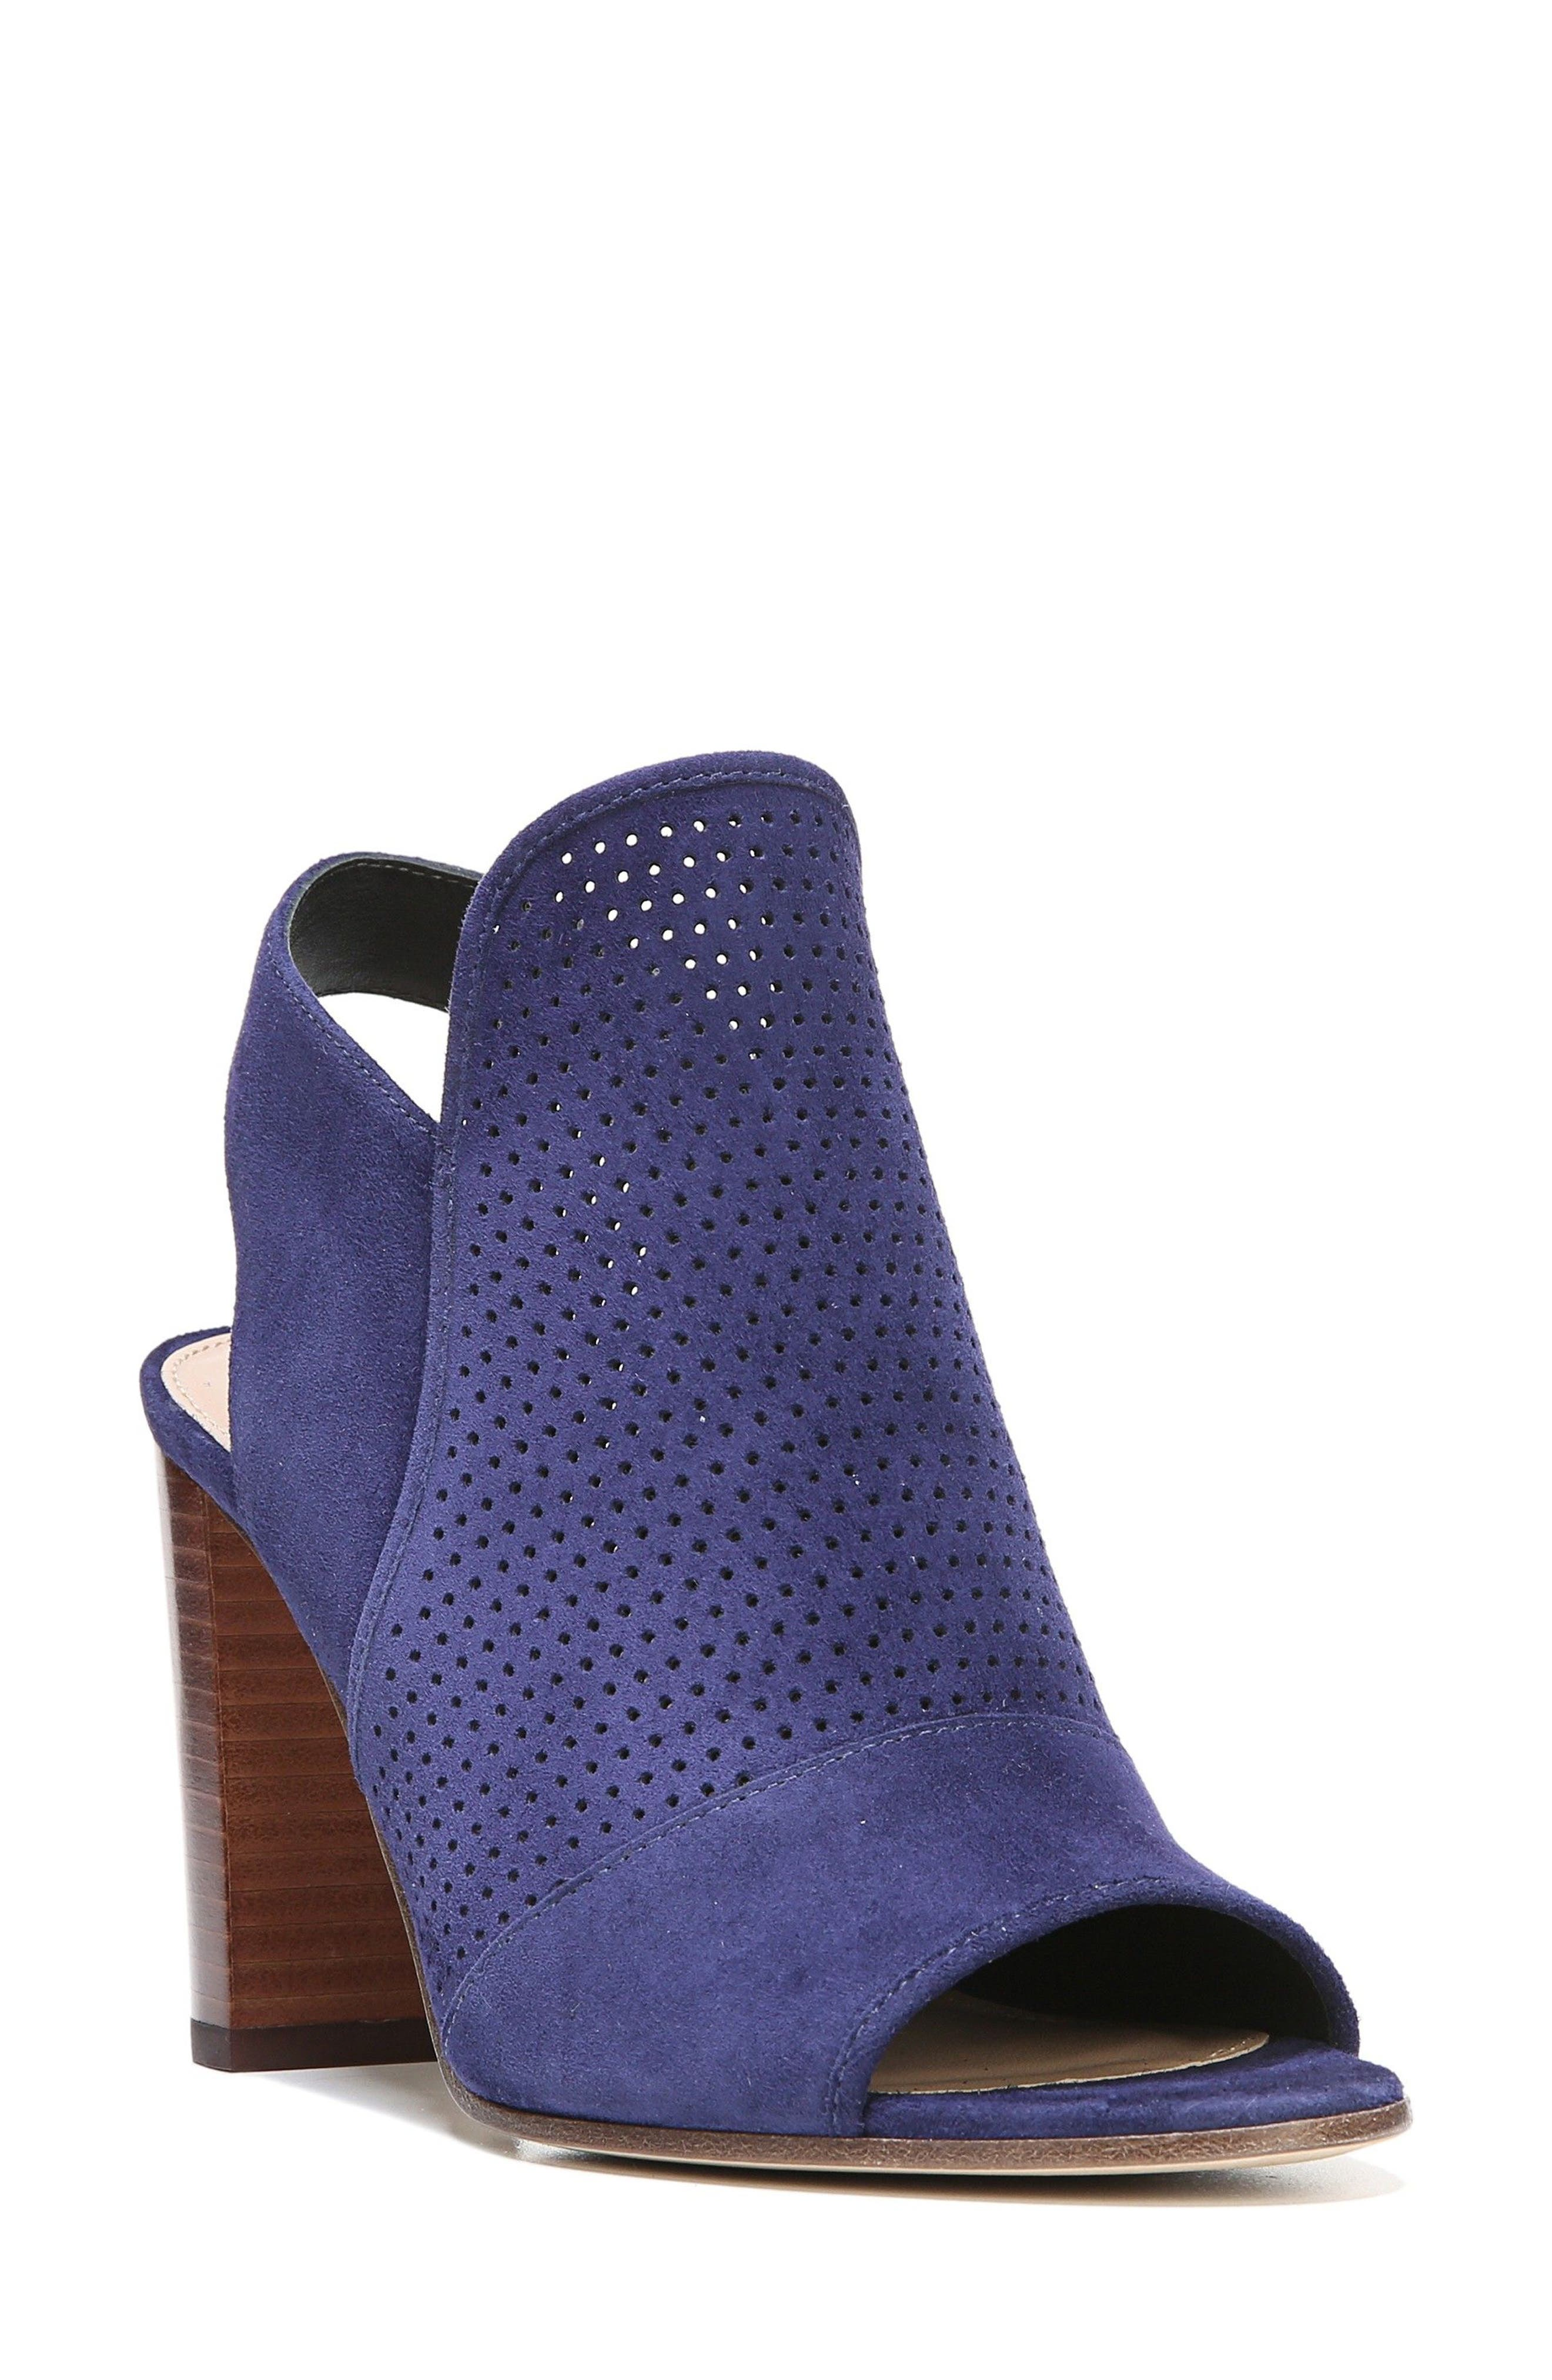 Gaze Block Heel Sandal,                         Main,                         color, Marina Blue Suede